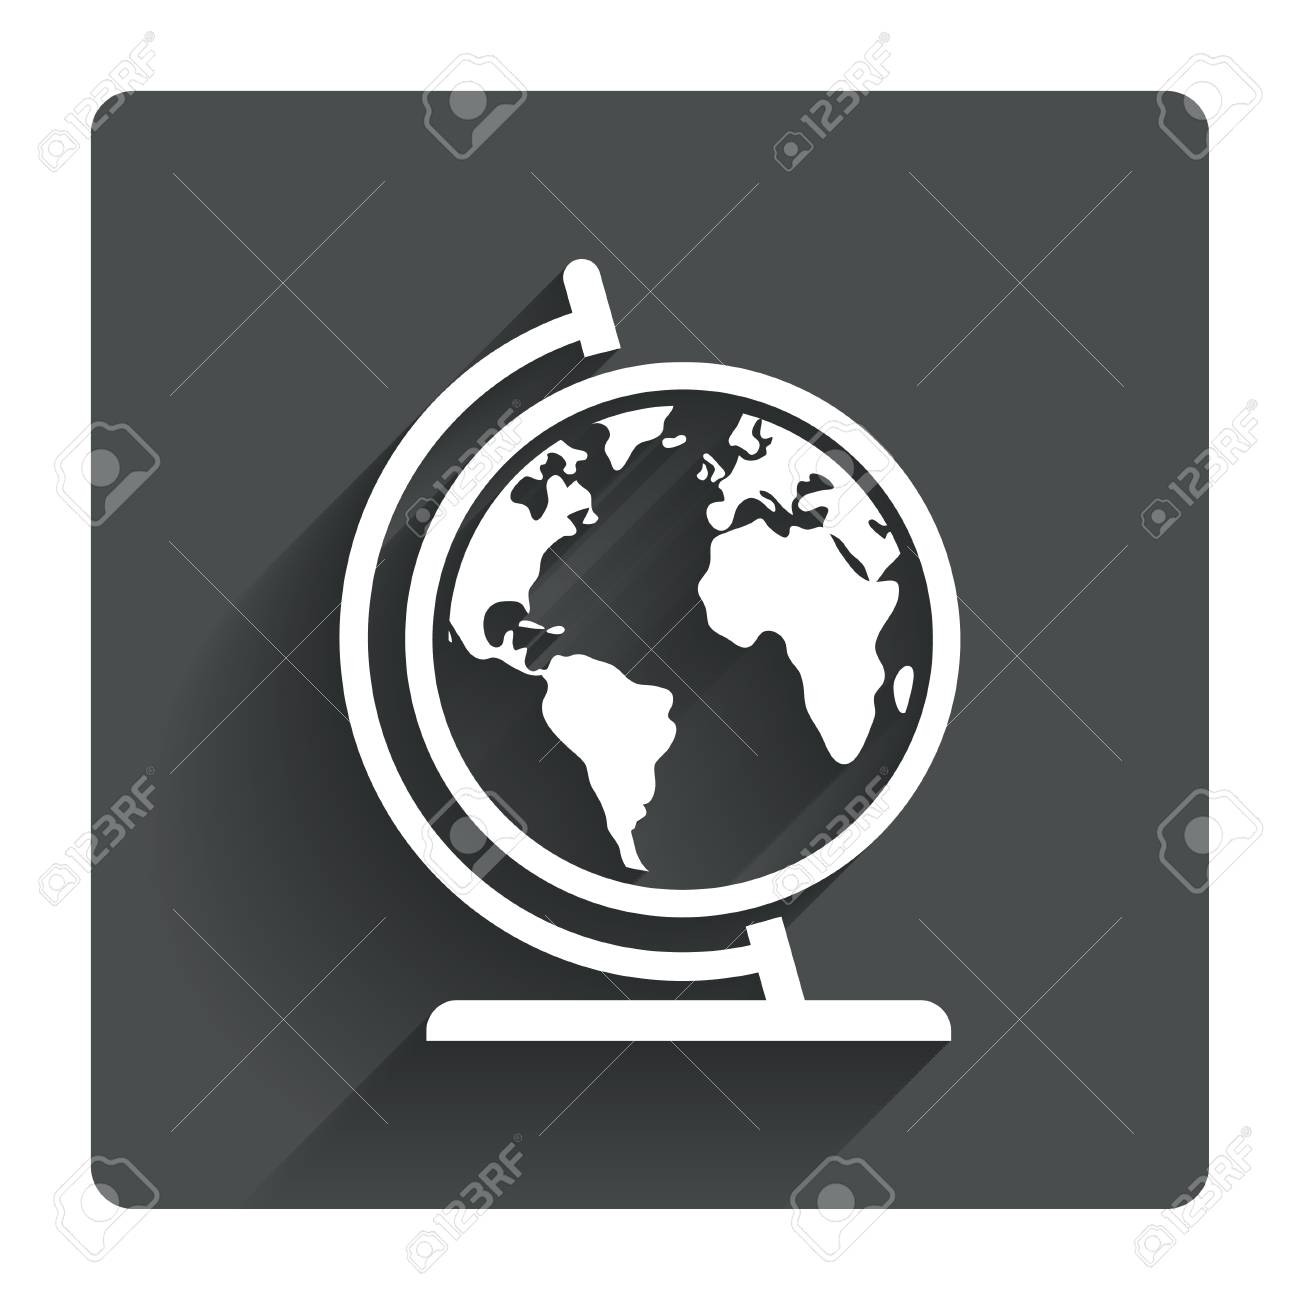 Globe sign icon world map geography symbol globe on stand for globe sign icon world map geography symbol globe on stand for studying gray gumiabroncs Gallery